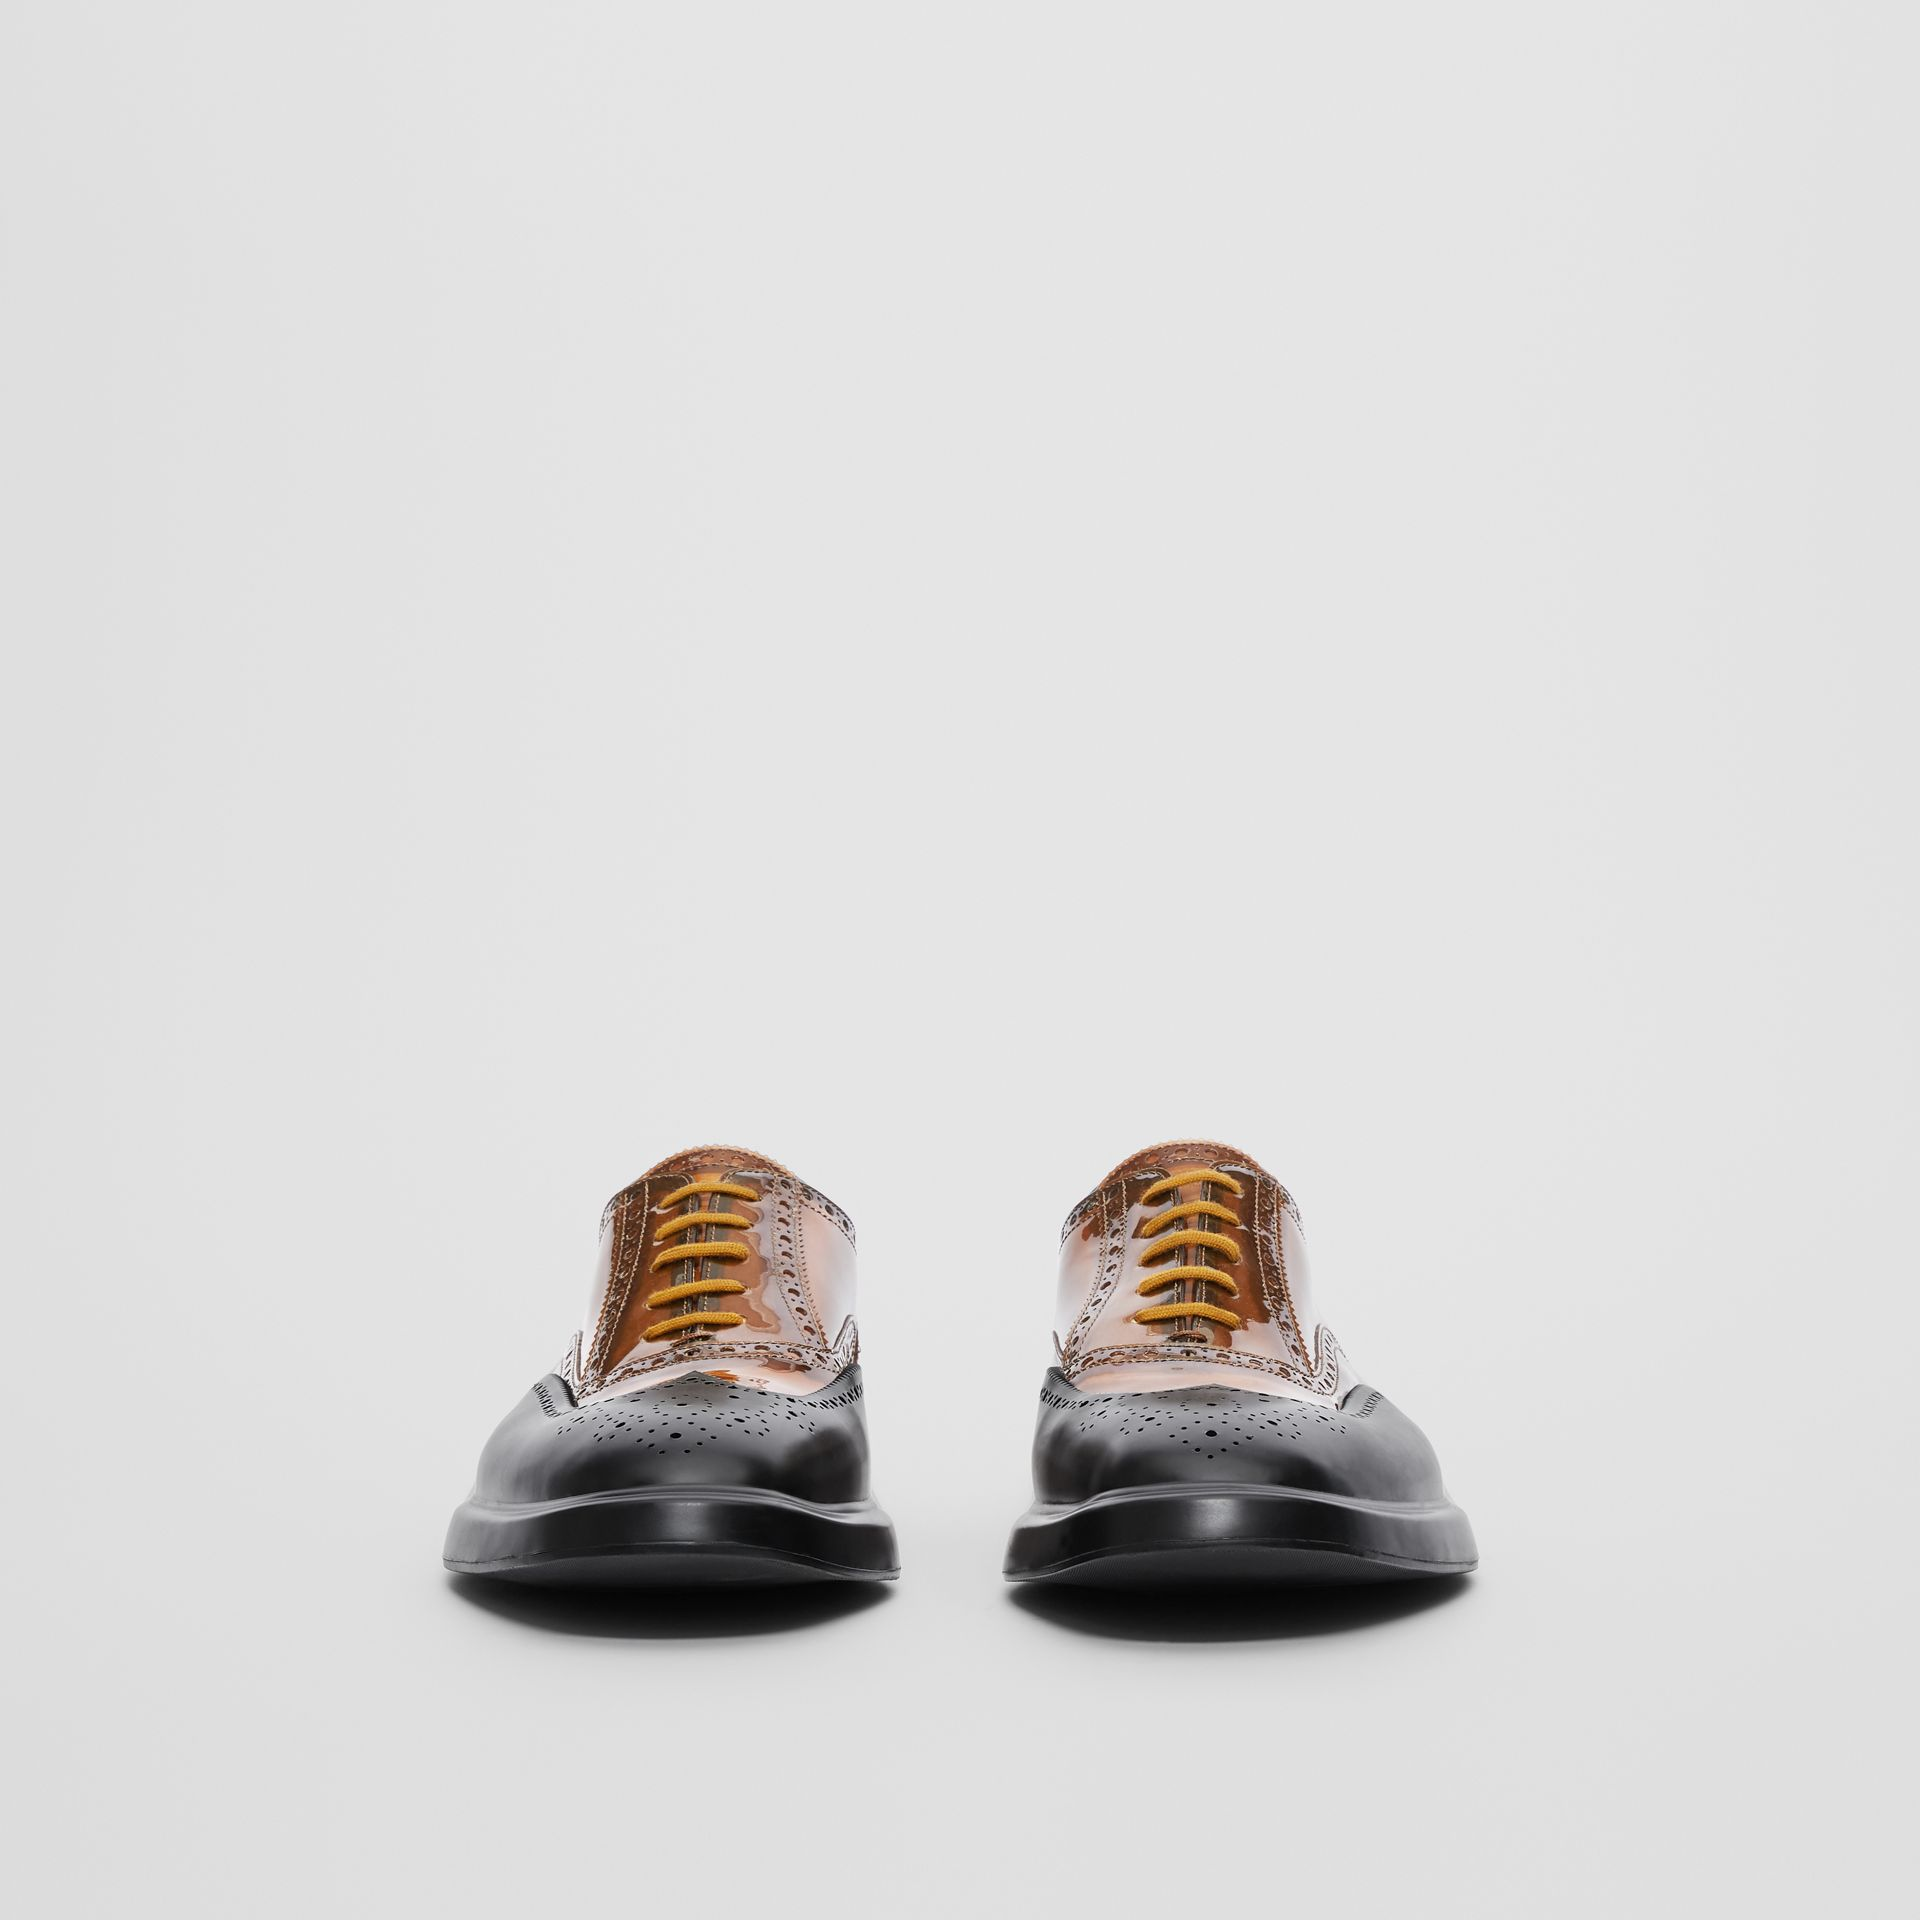 Toe Cap Detail Vinyl and Leather Oxford Brogues in Brown/black - Men | Burberry - gallery image 2